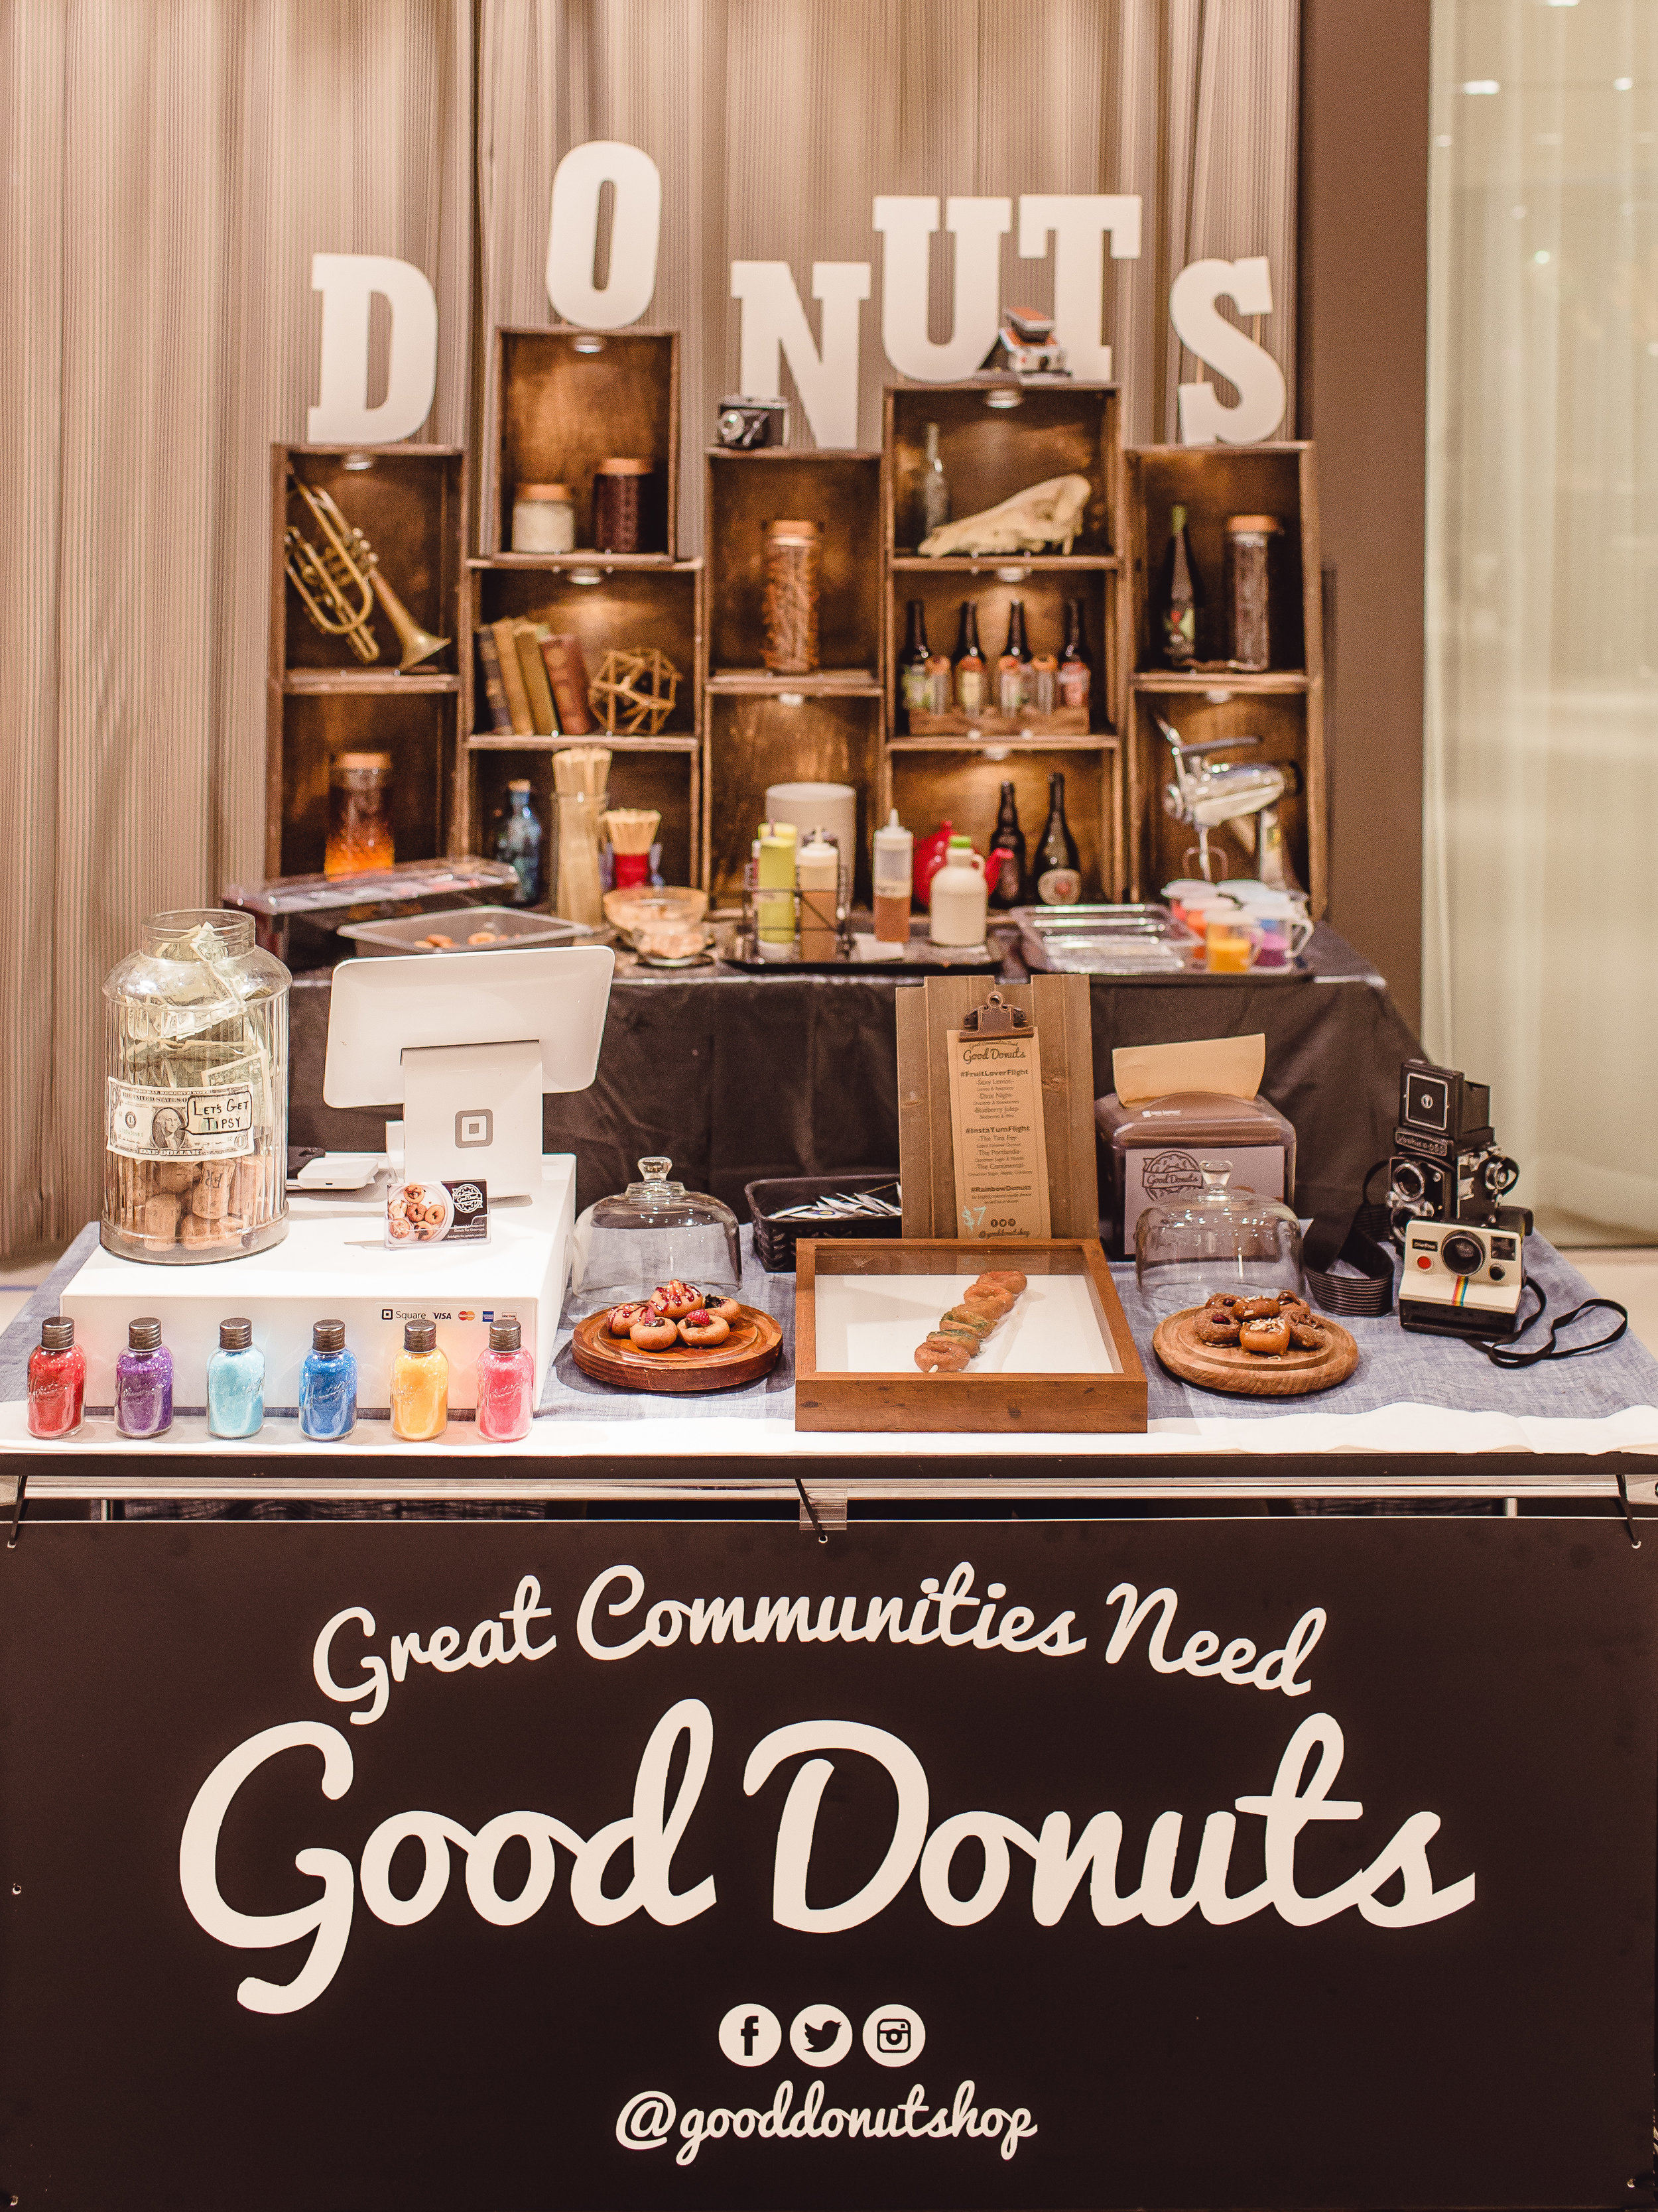 Good Donut Shop Central New Jersey Images InstaYum -3.jpg